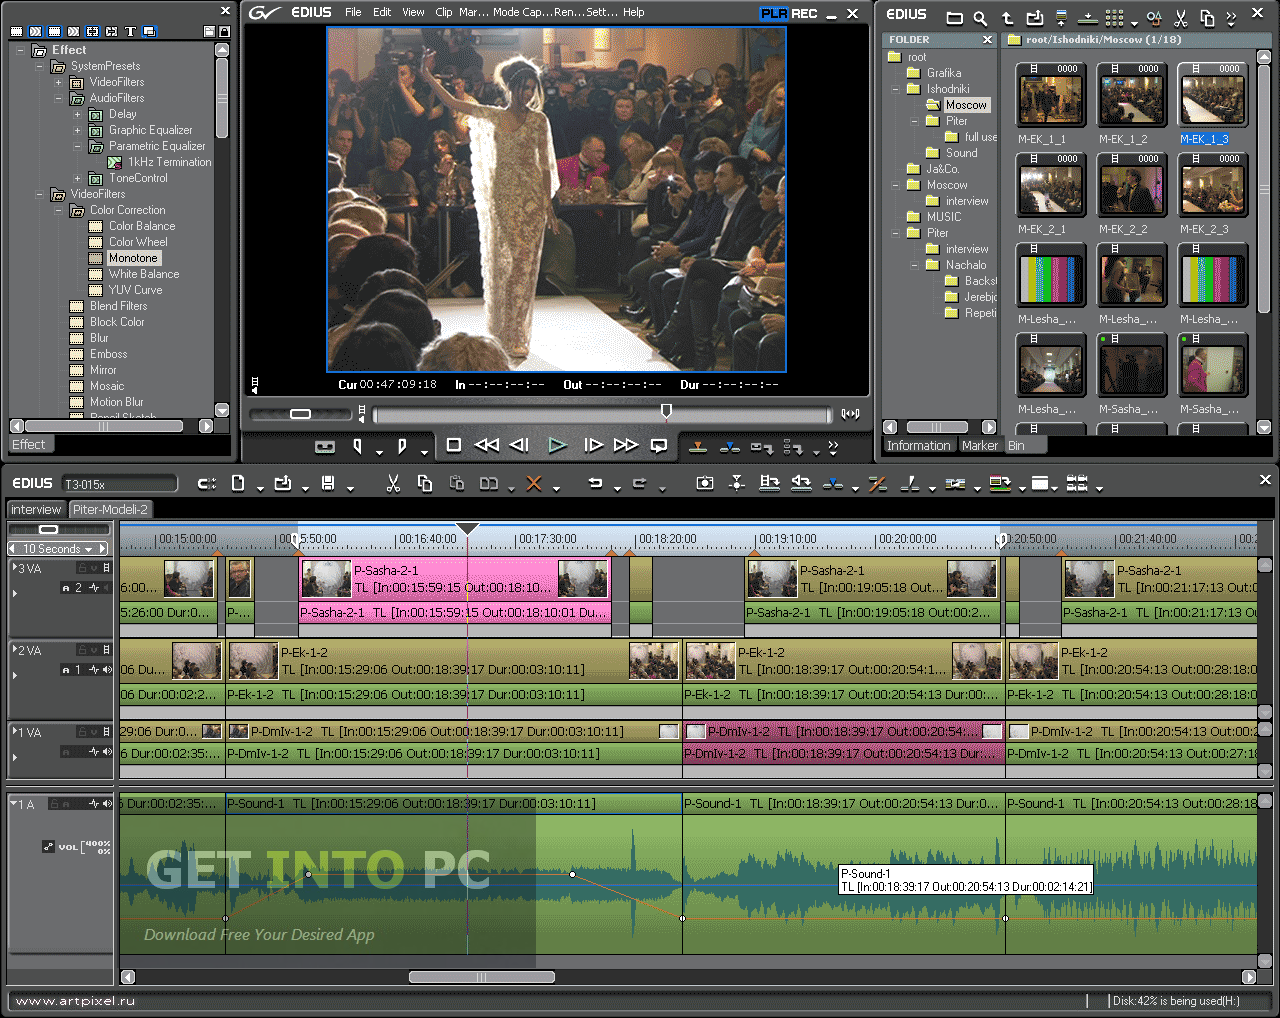 edius video editing software free download full version